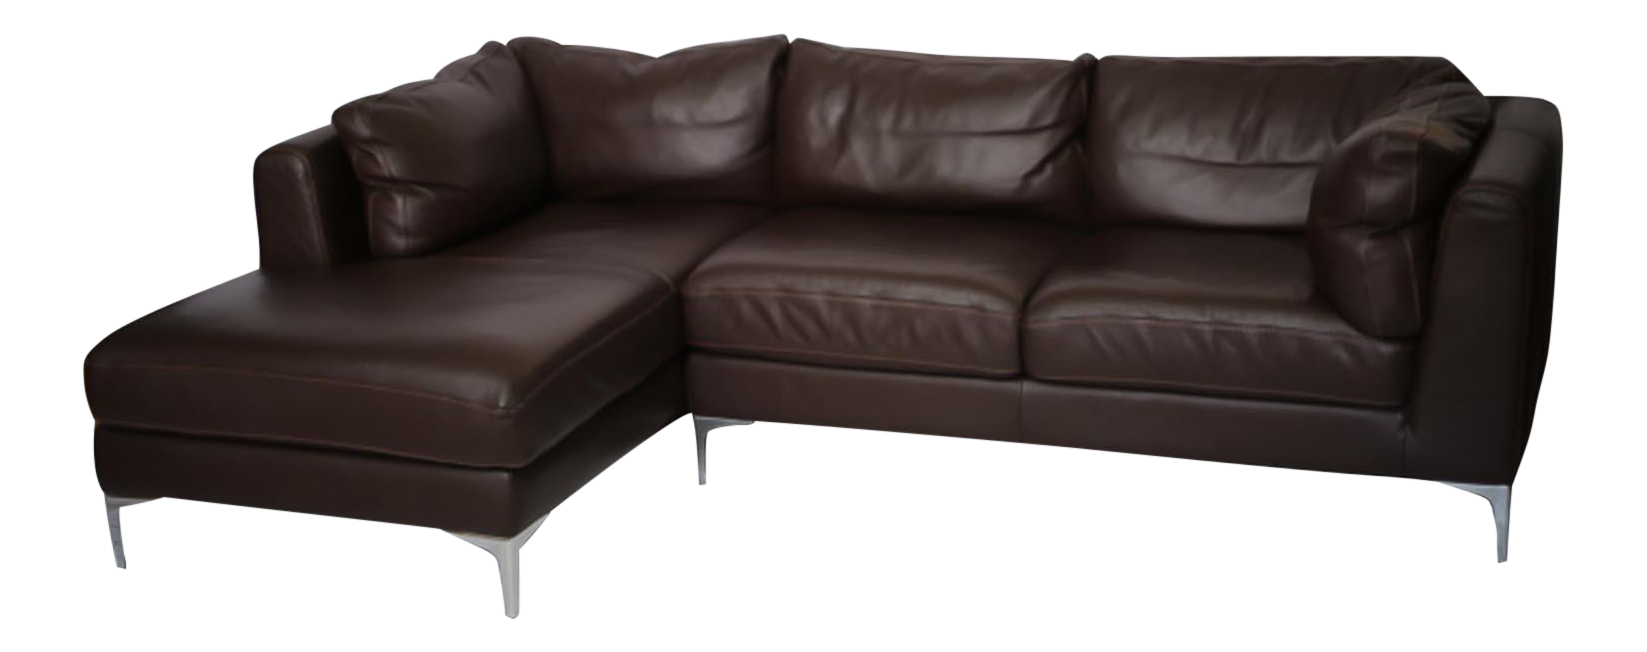 Remarkable Nicoletti For Design Within Reach Brown Leather Sectional Ncnpc Chair Design For Home Ncnpcorg